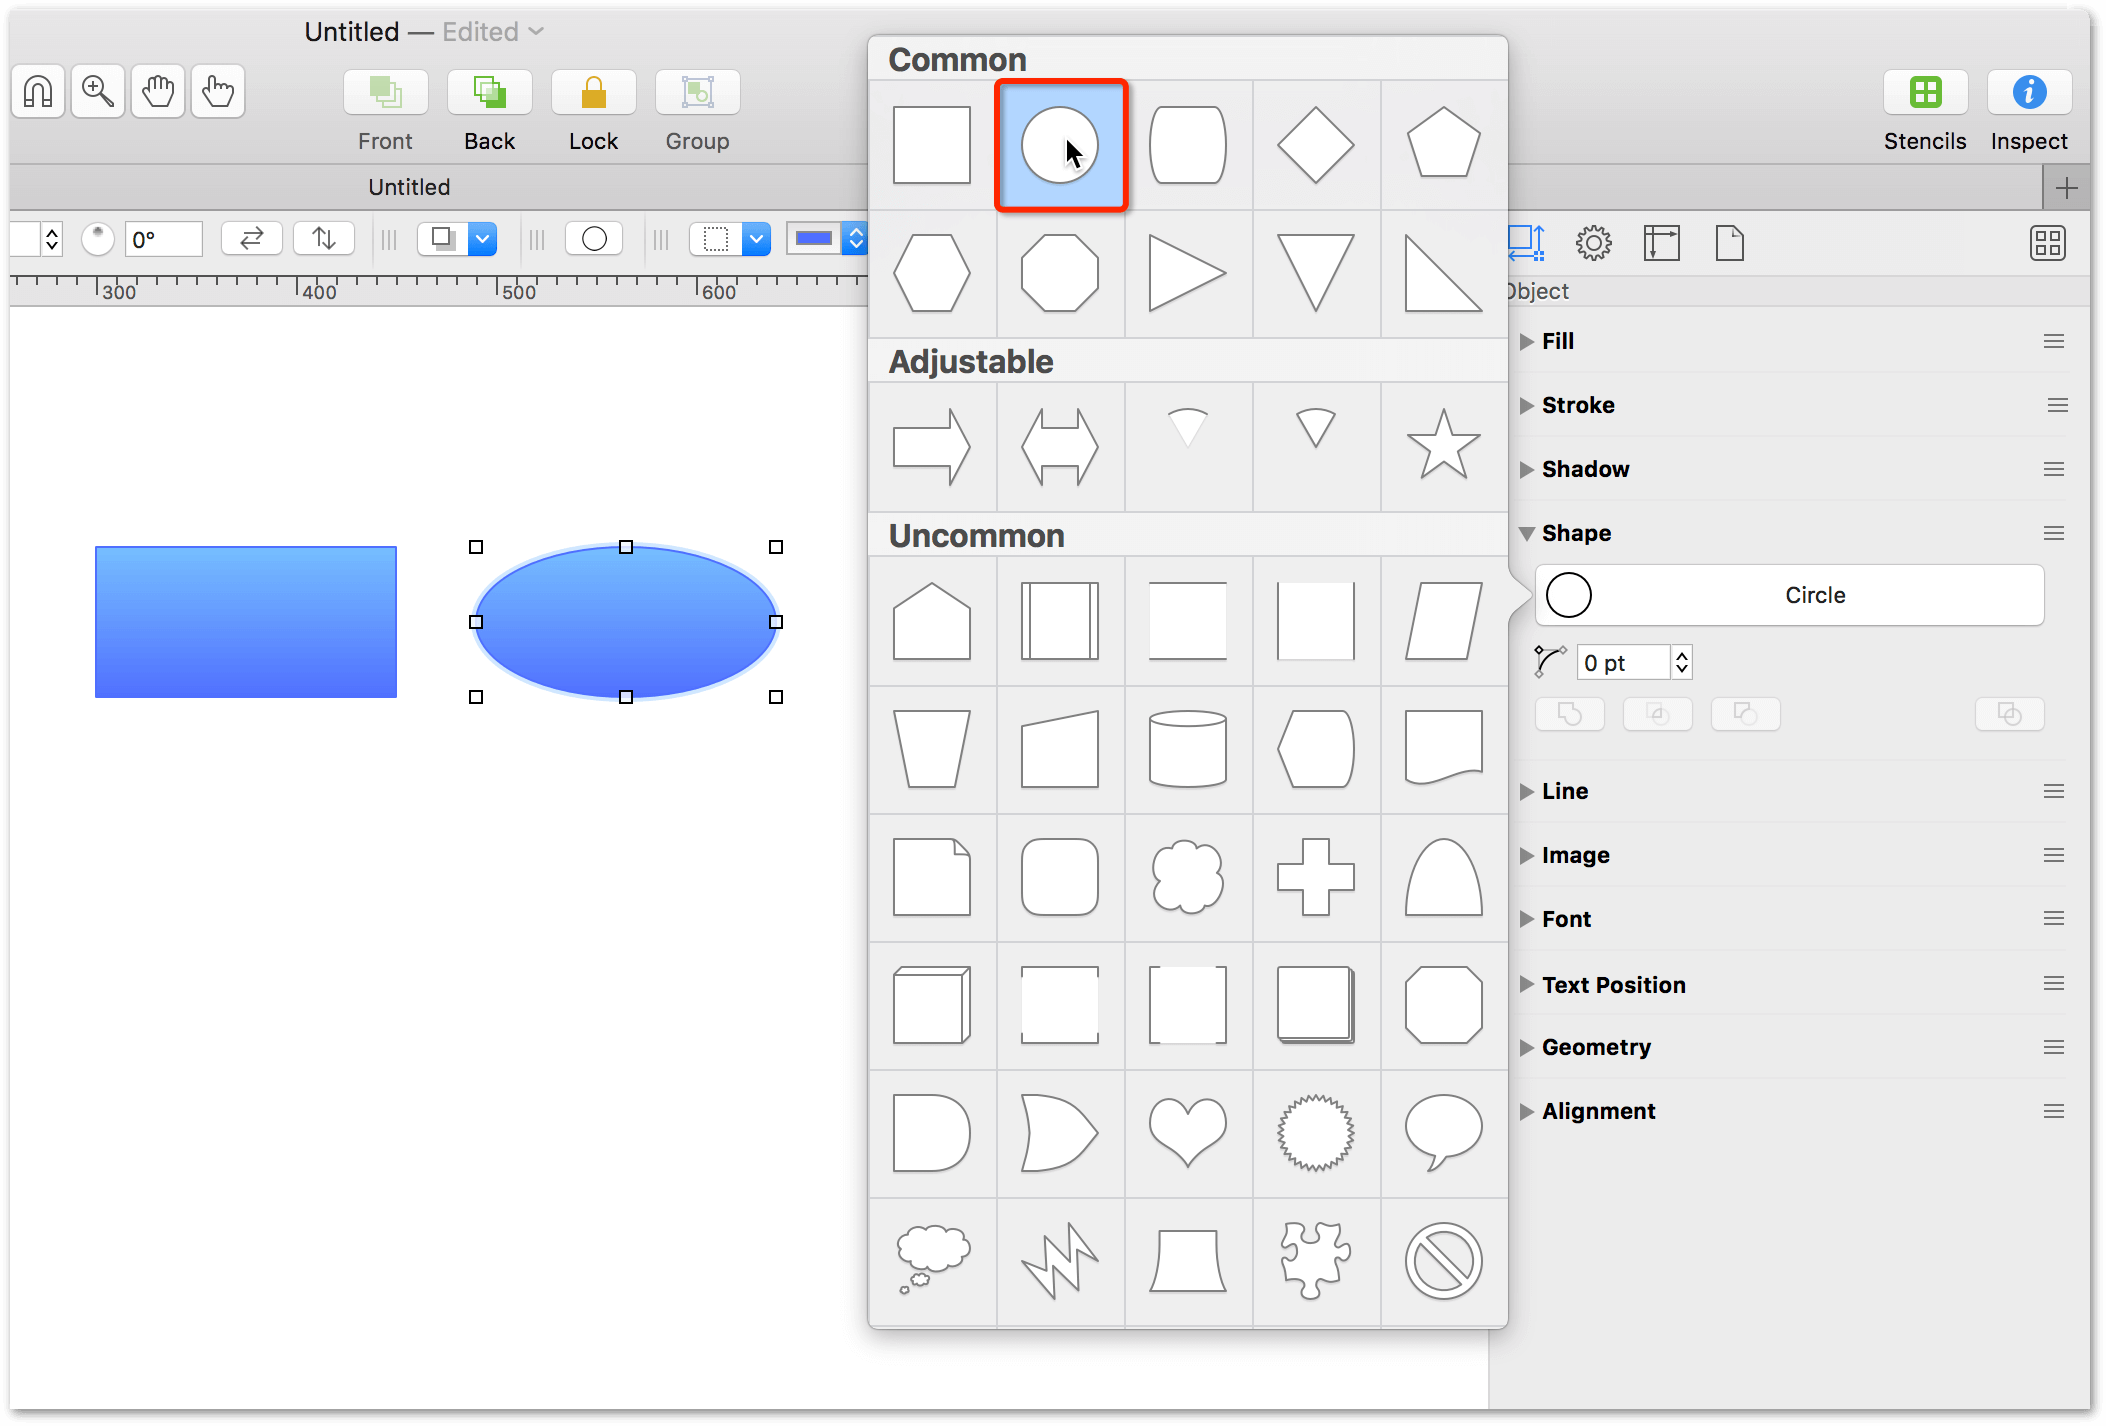 Changing a shape using the Shape inspector